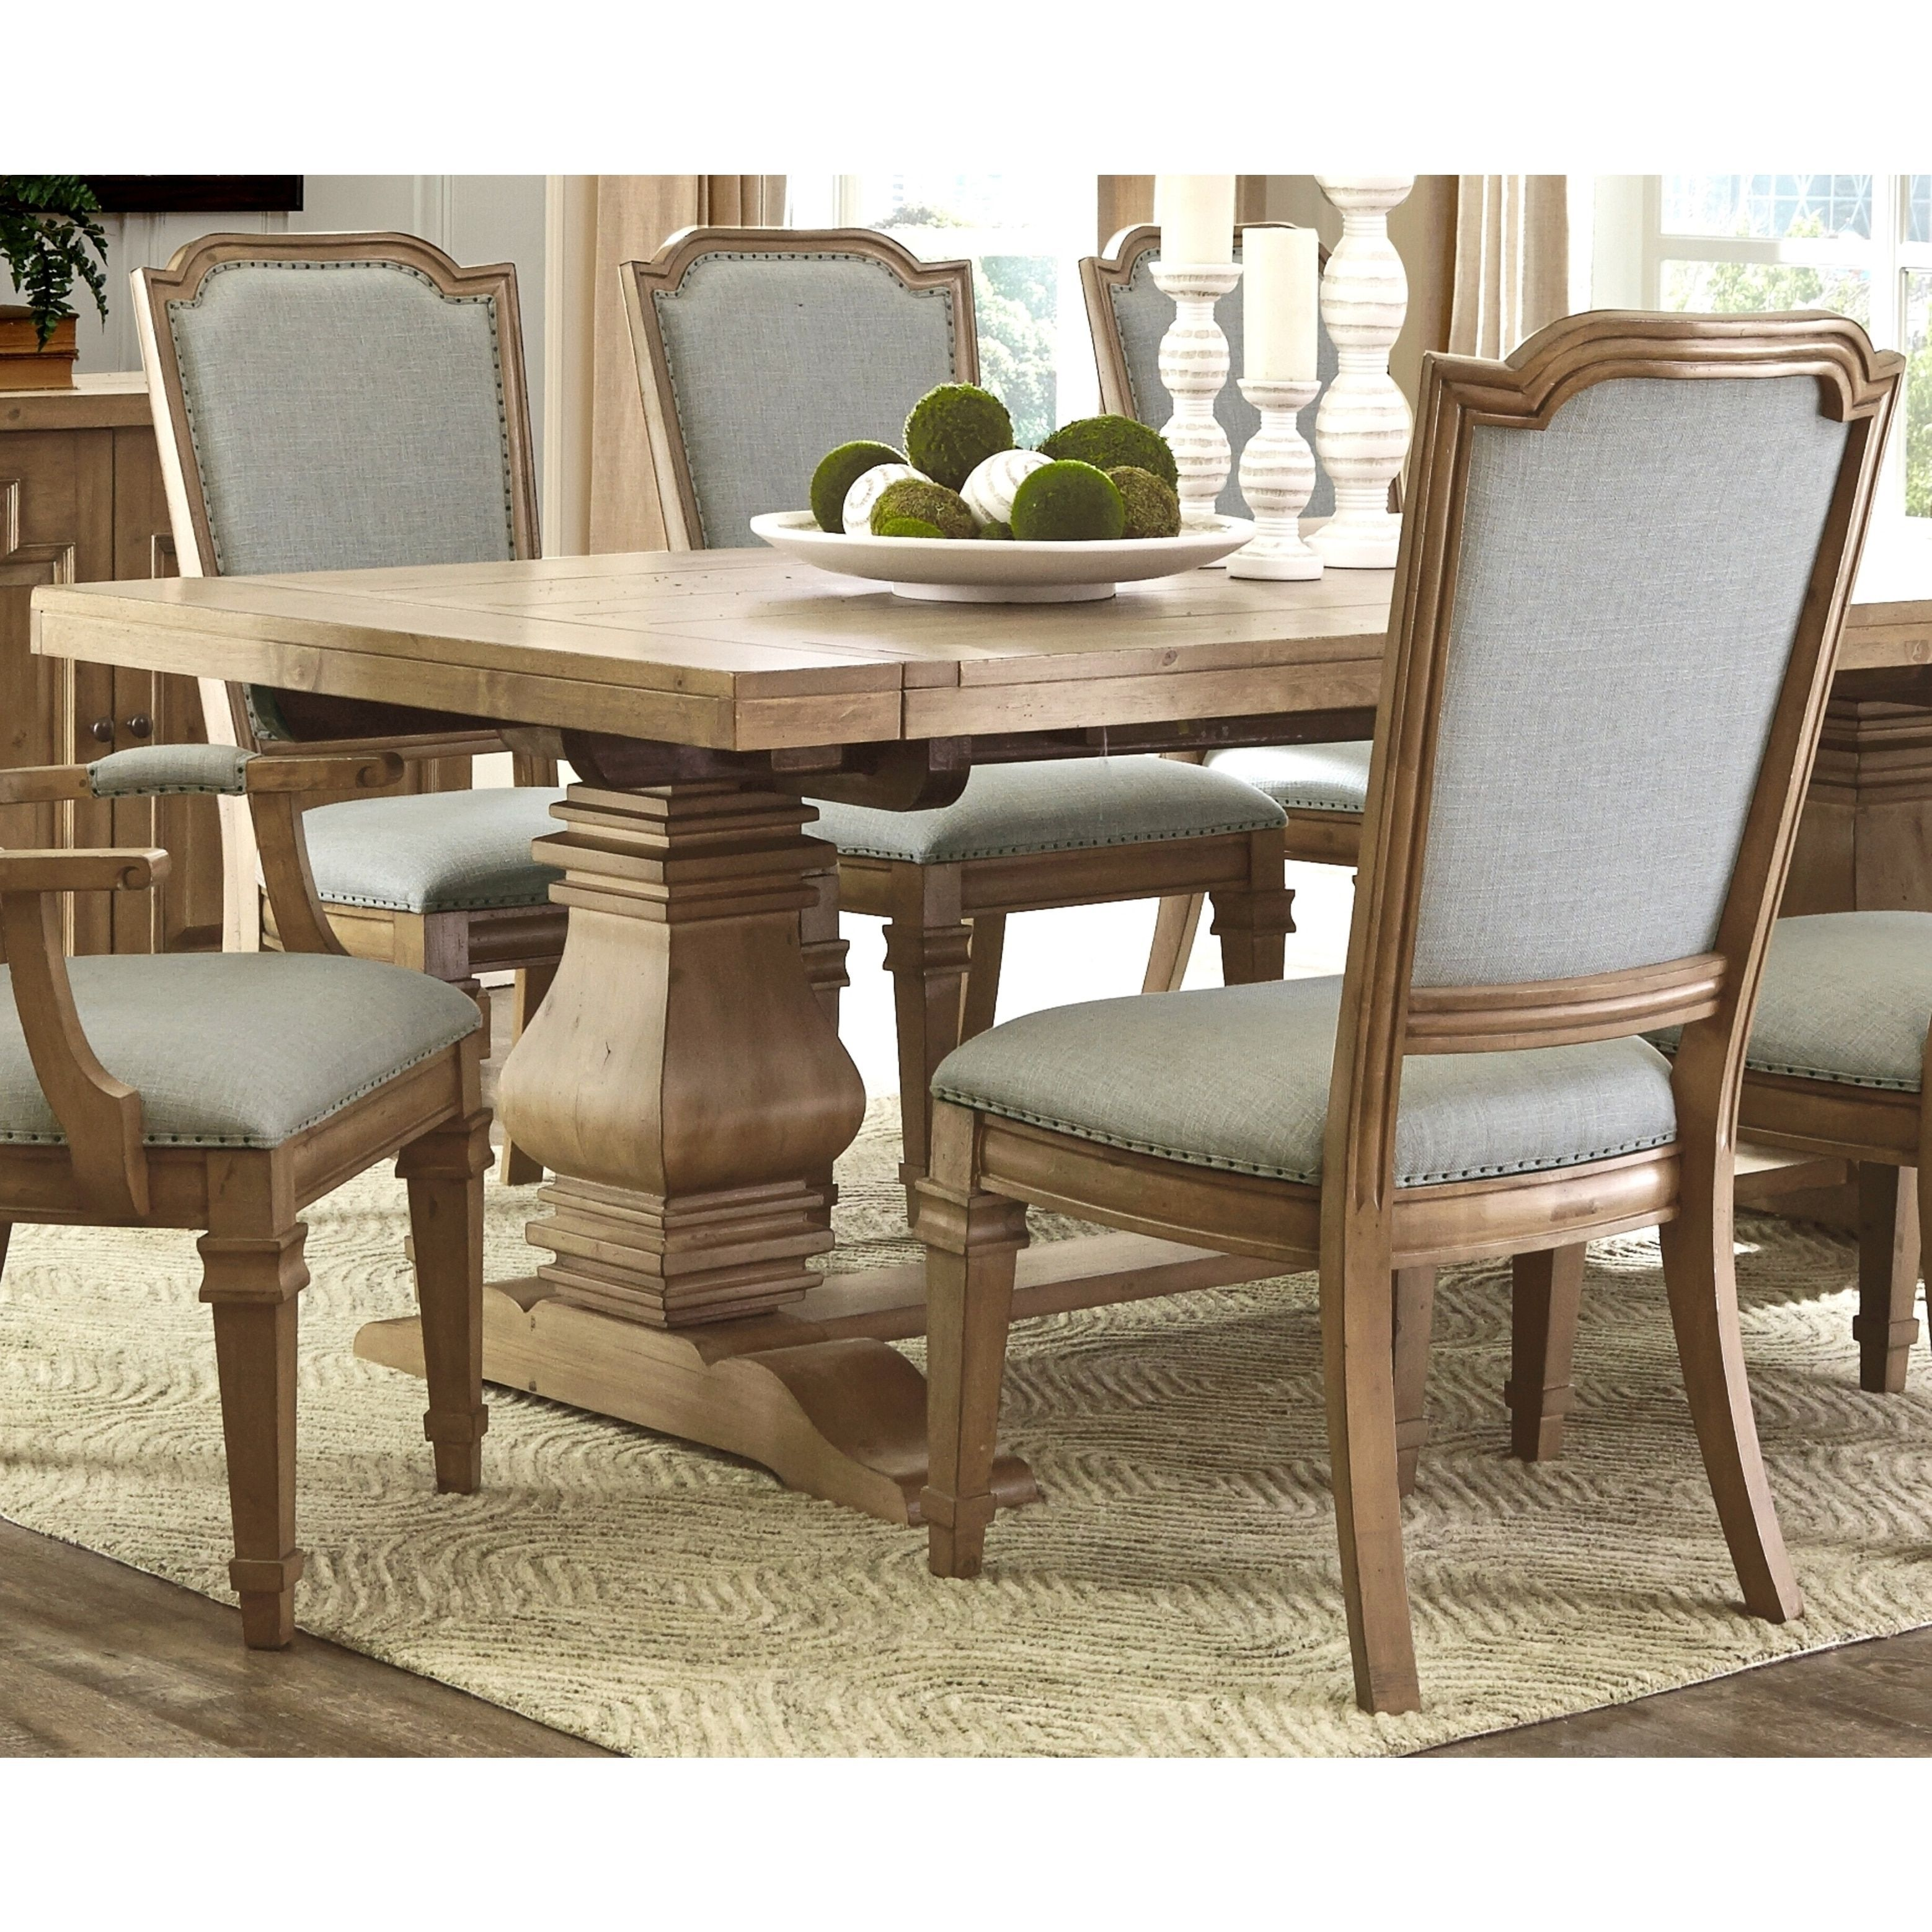 Overstock Com Online Shopping Bedding Furniture Electronics Jewelry Clothing More Pedestal Dining Table Round Dining Room Double Pedestal Dining Table